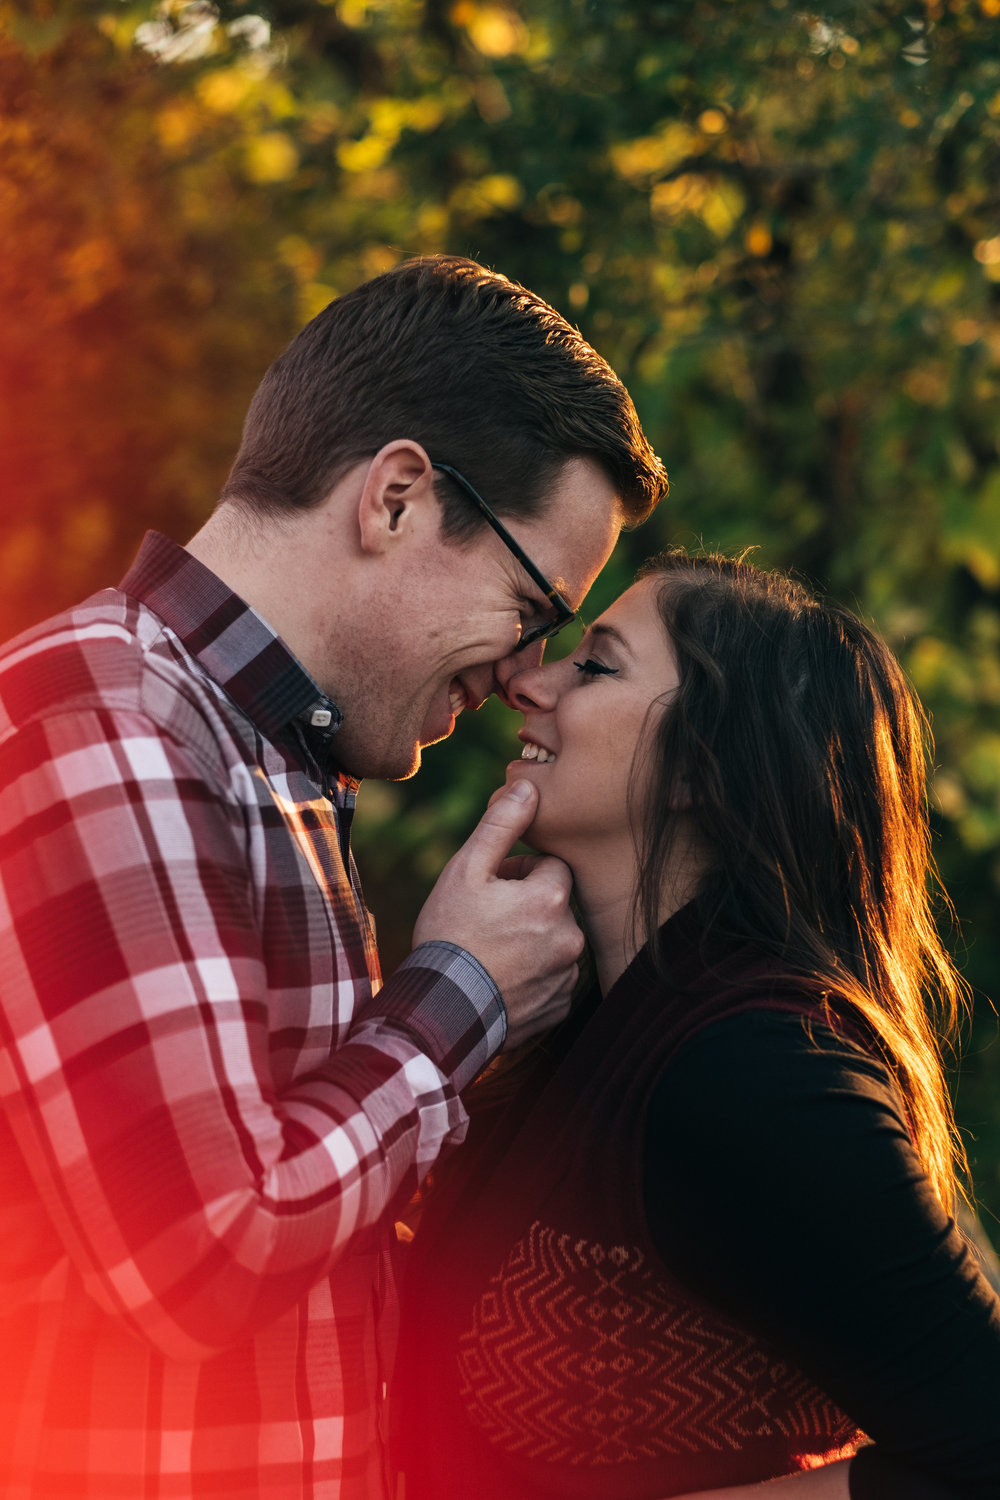 Downtown Toledo engagement session in the Fall.